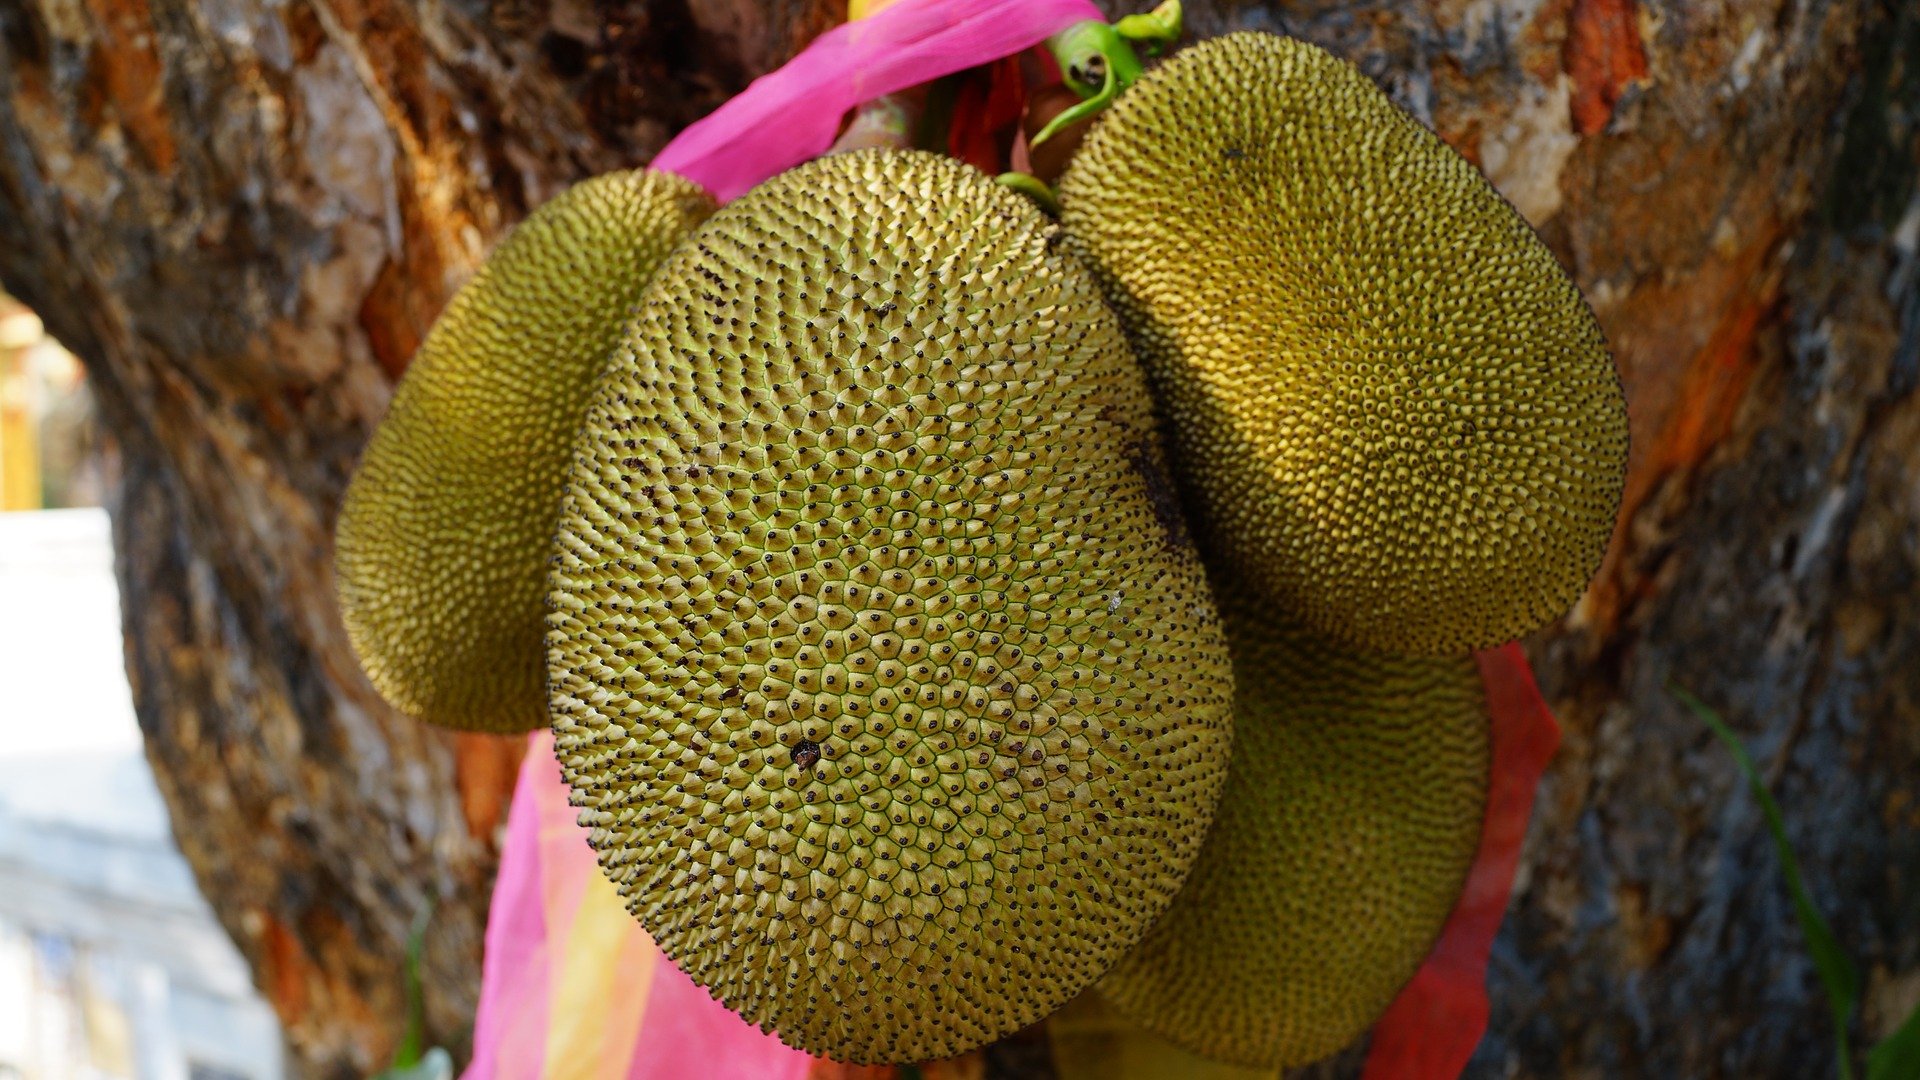 Top 25 Unusual Exotic Fruits From Asia You Must Try